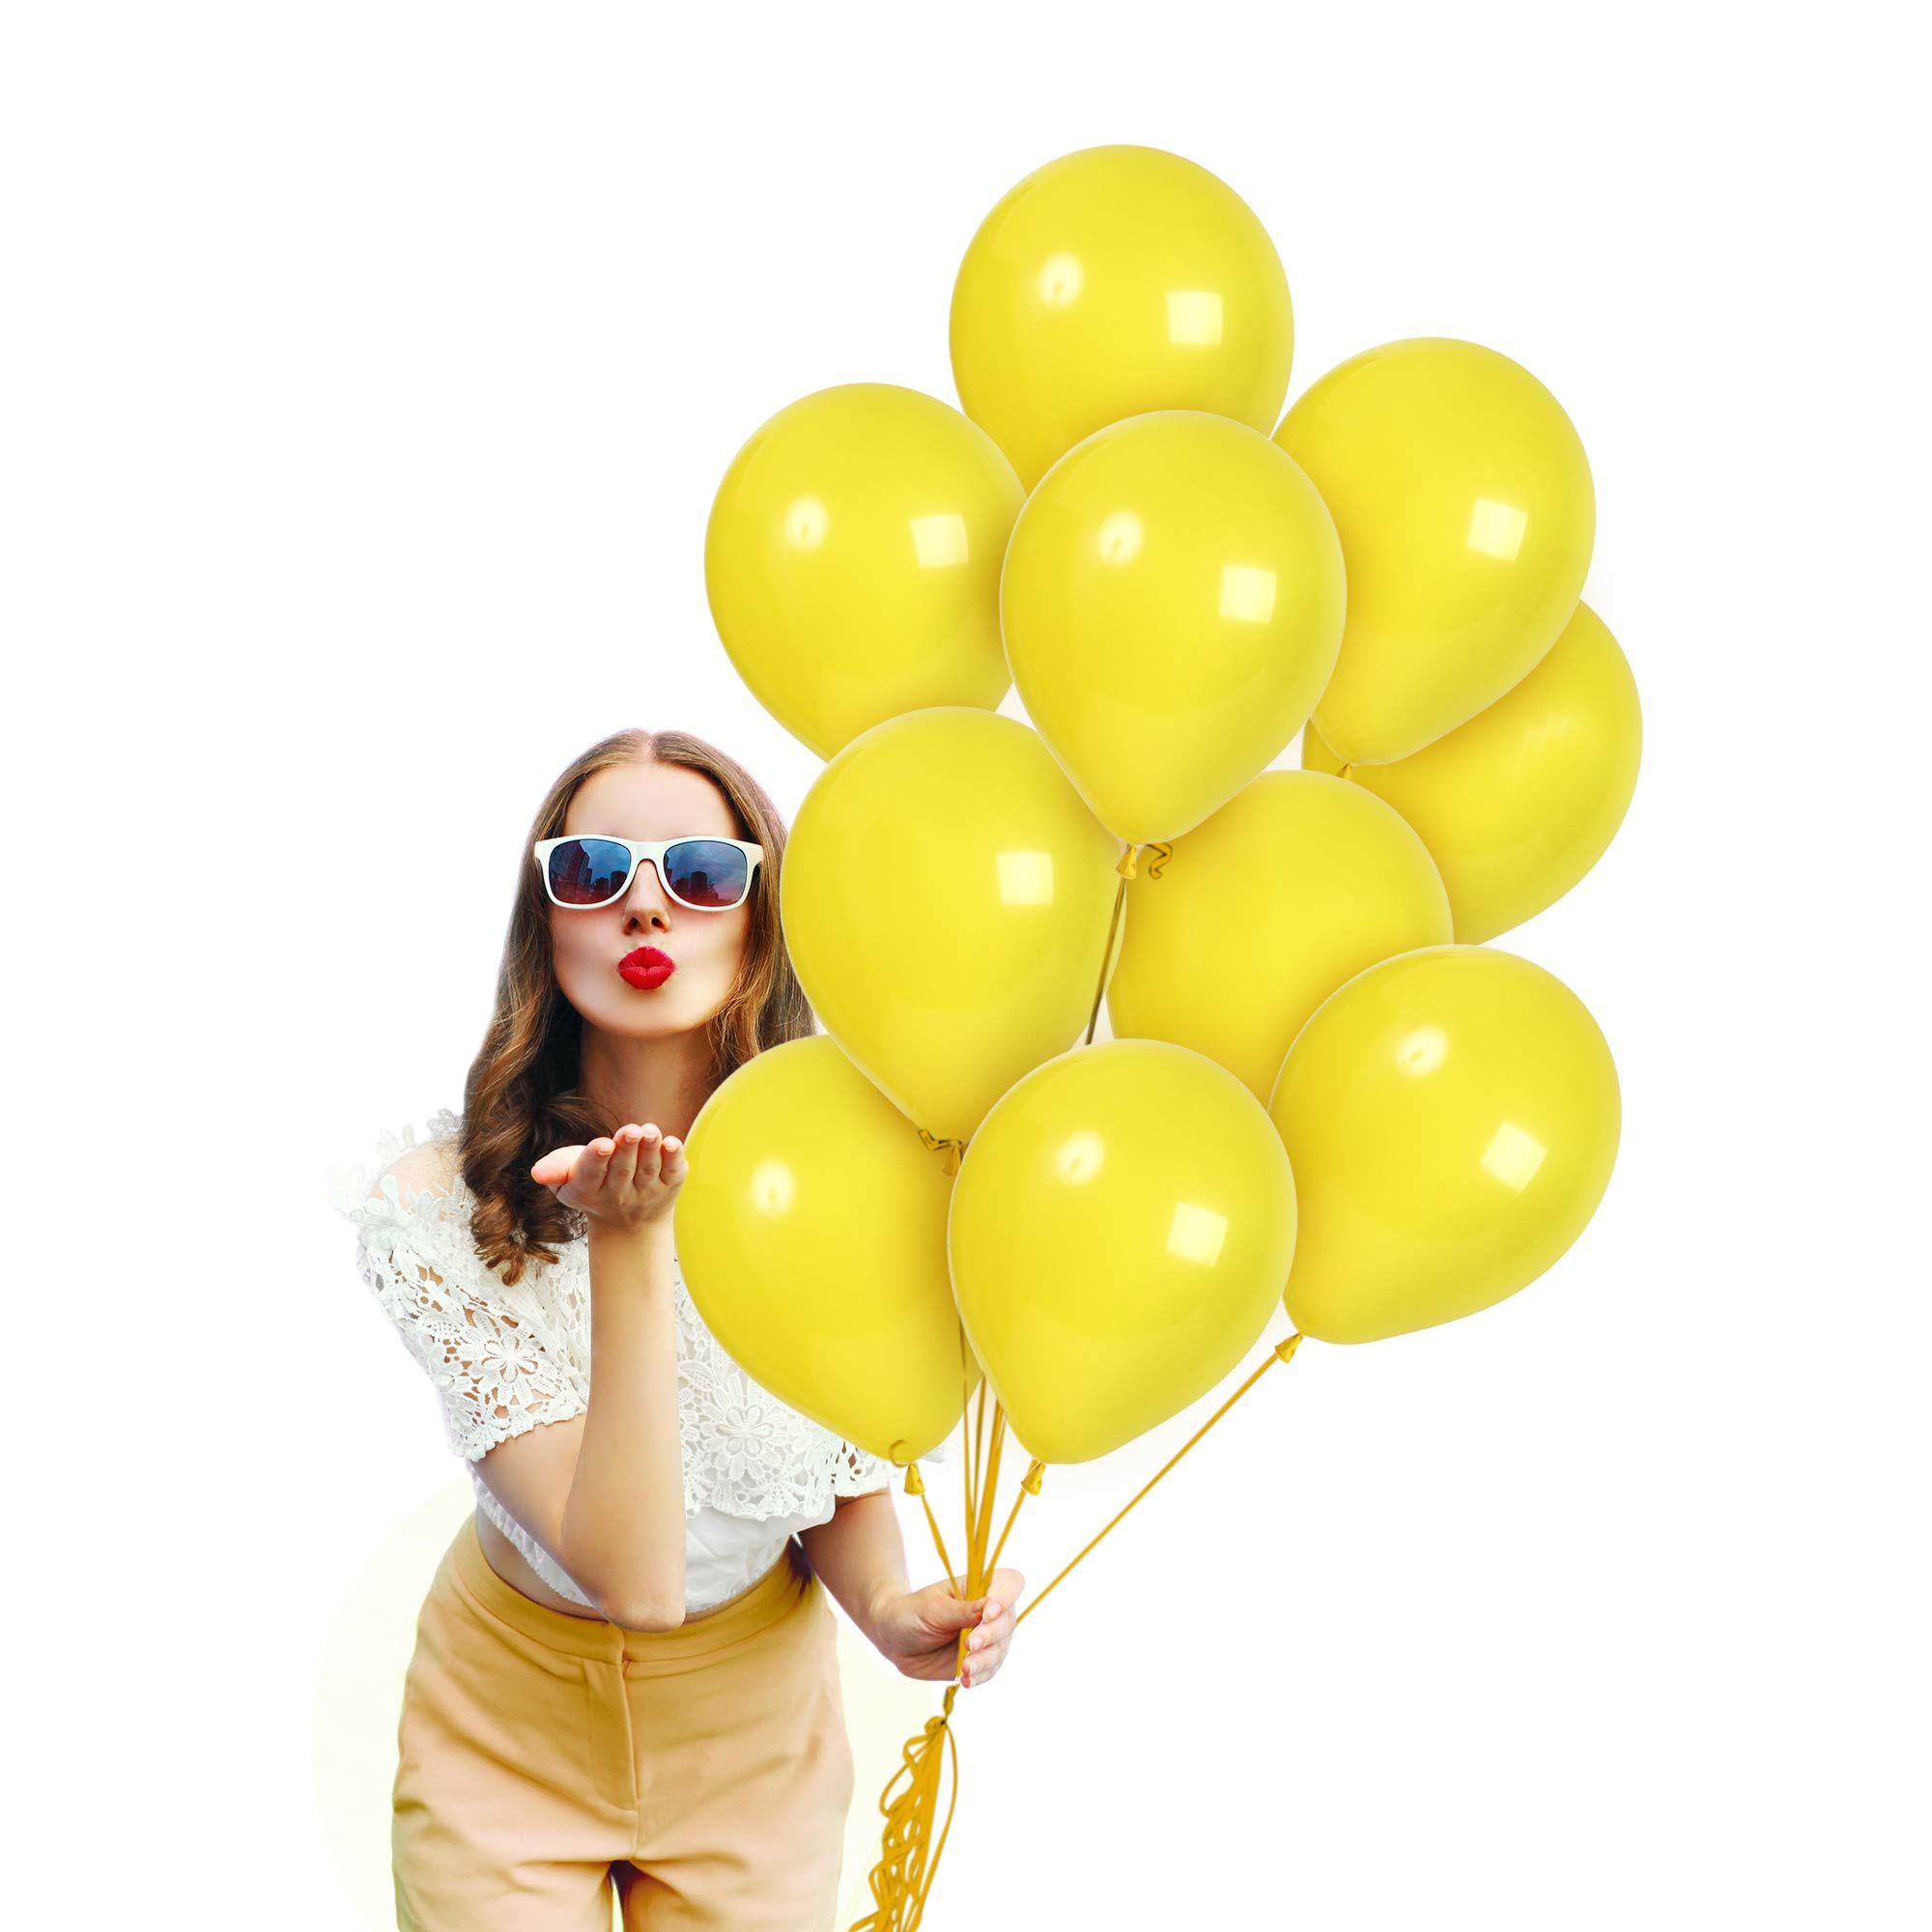 Treasures Gifted Solid Bright Yellow Balloon Garland 72 Pack 12 Inch Premium Quality Balloon for Mardi Gras Party Bumble Bee Baby Showers Birthday Topical Lemon Fiestas Party Supplies